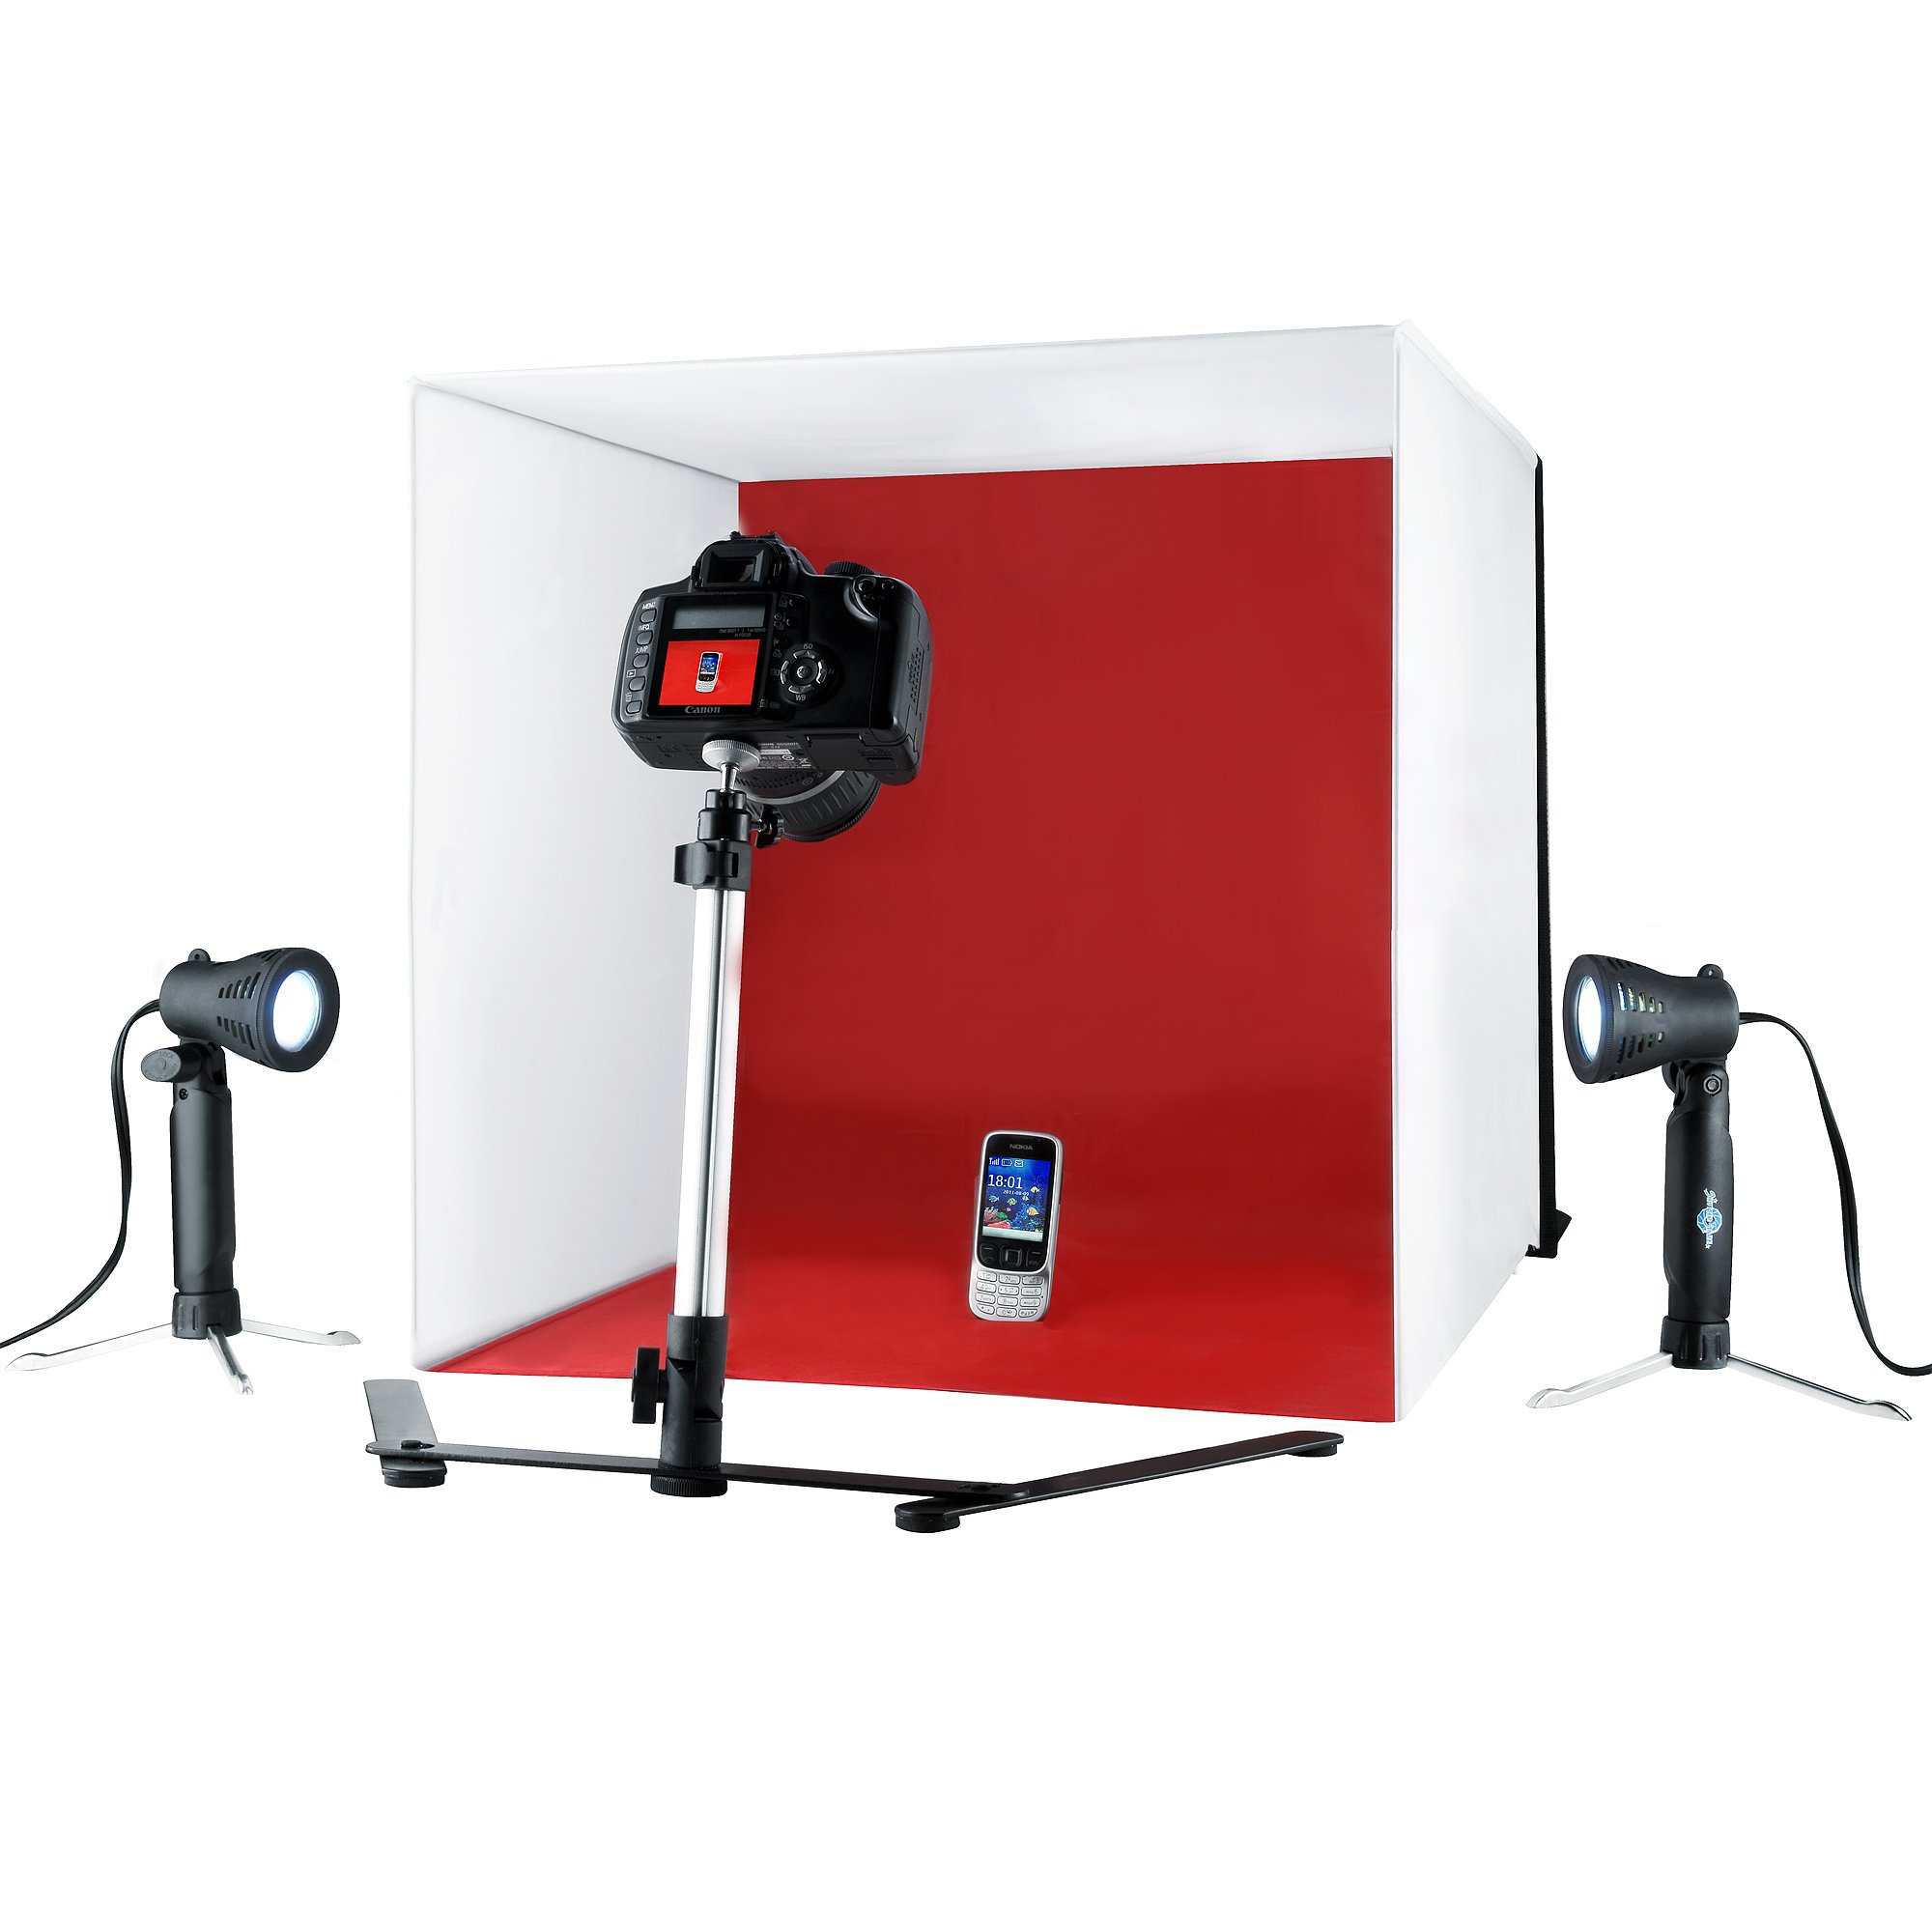 Shutter Starz 3086 Professional Quality Studio Prophotoz Kit Light Cube Product Photo Tent